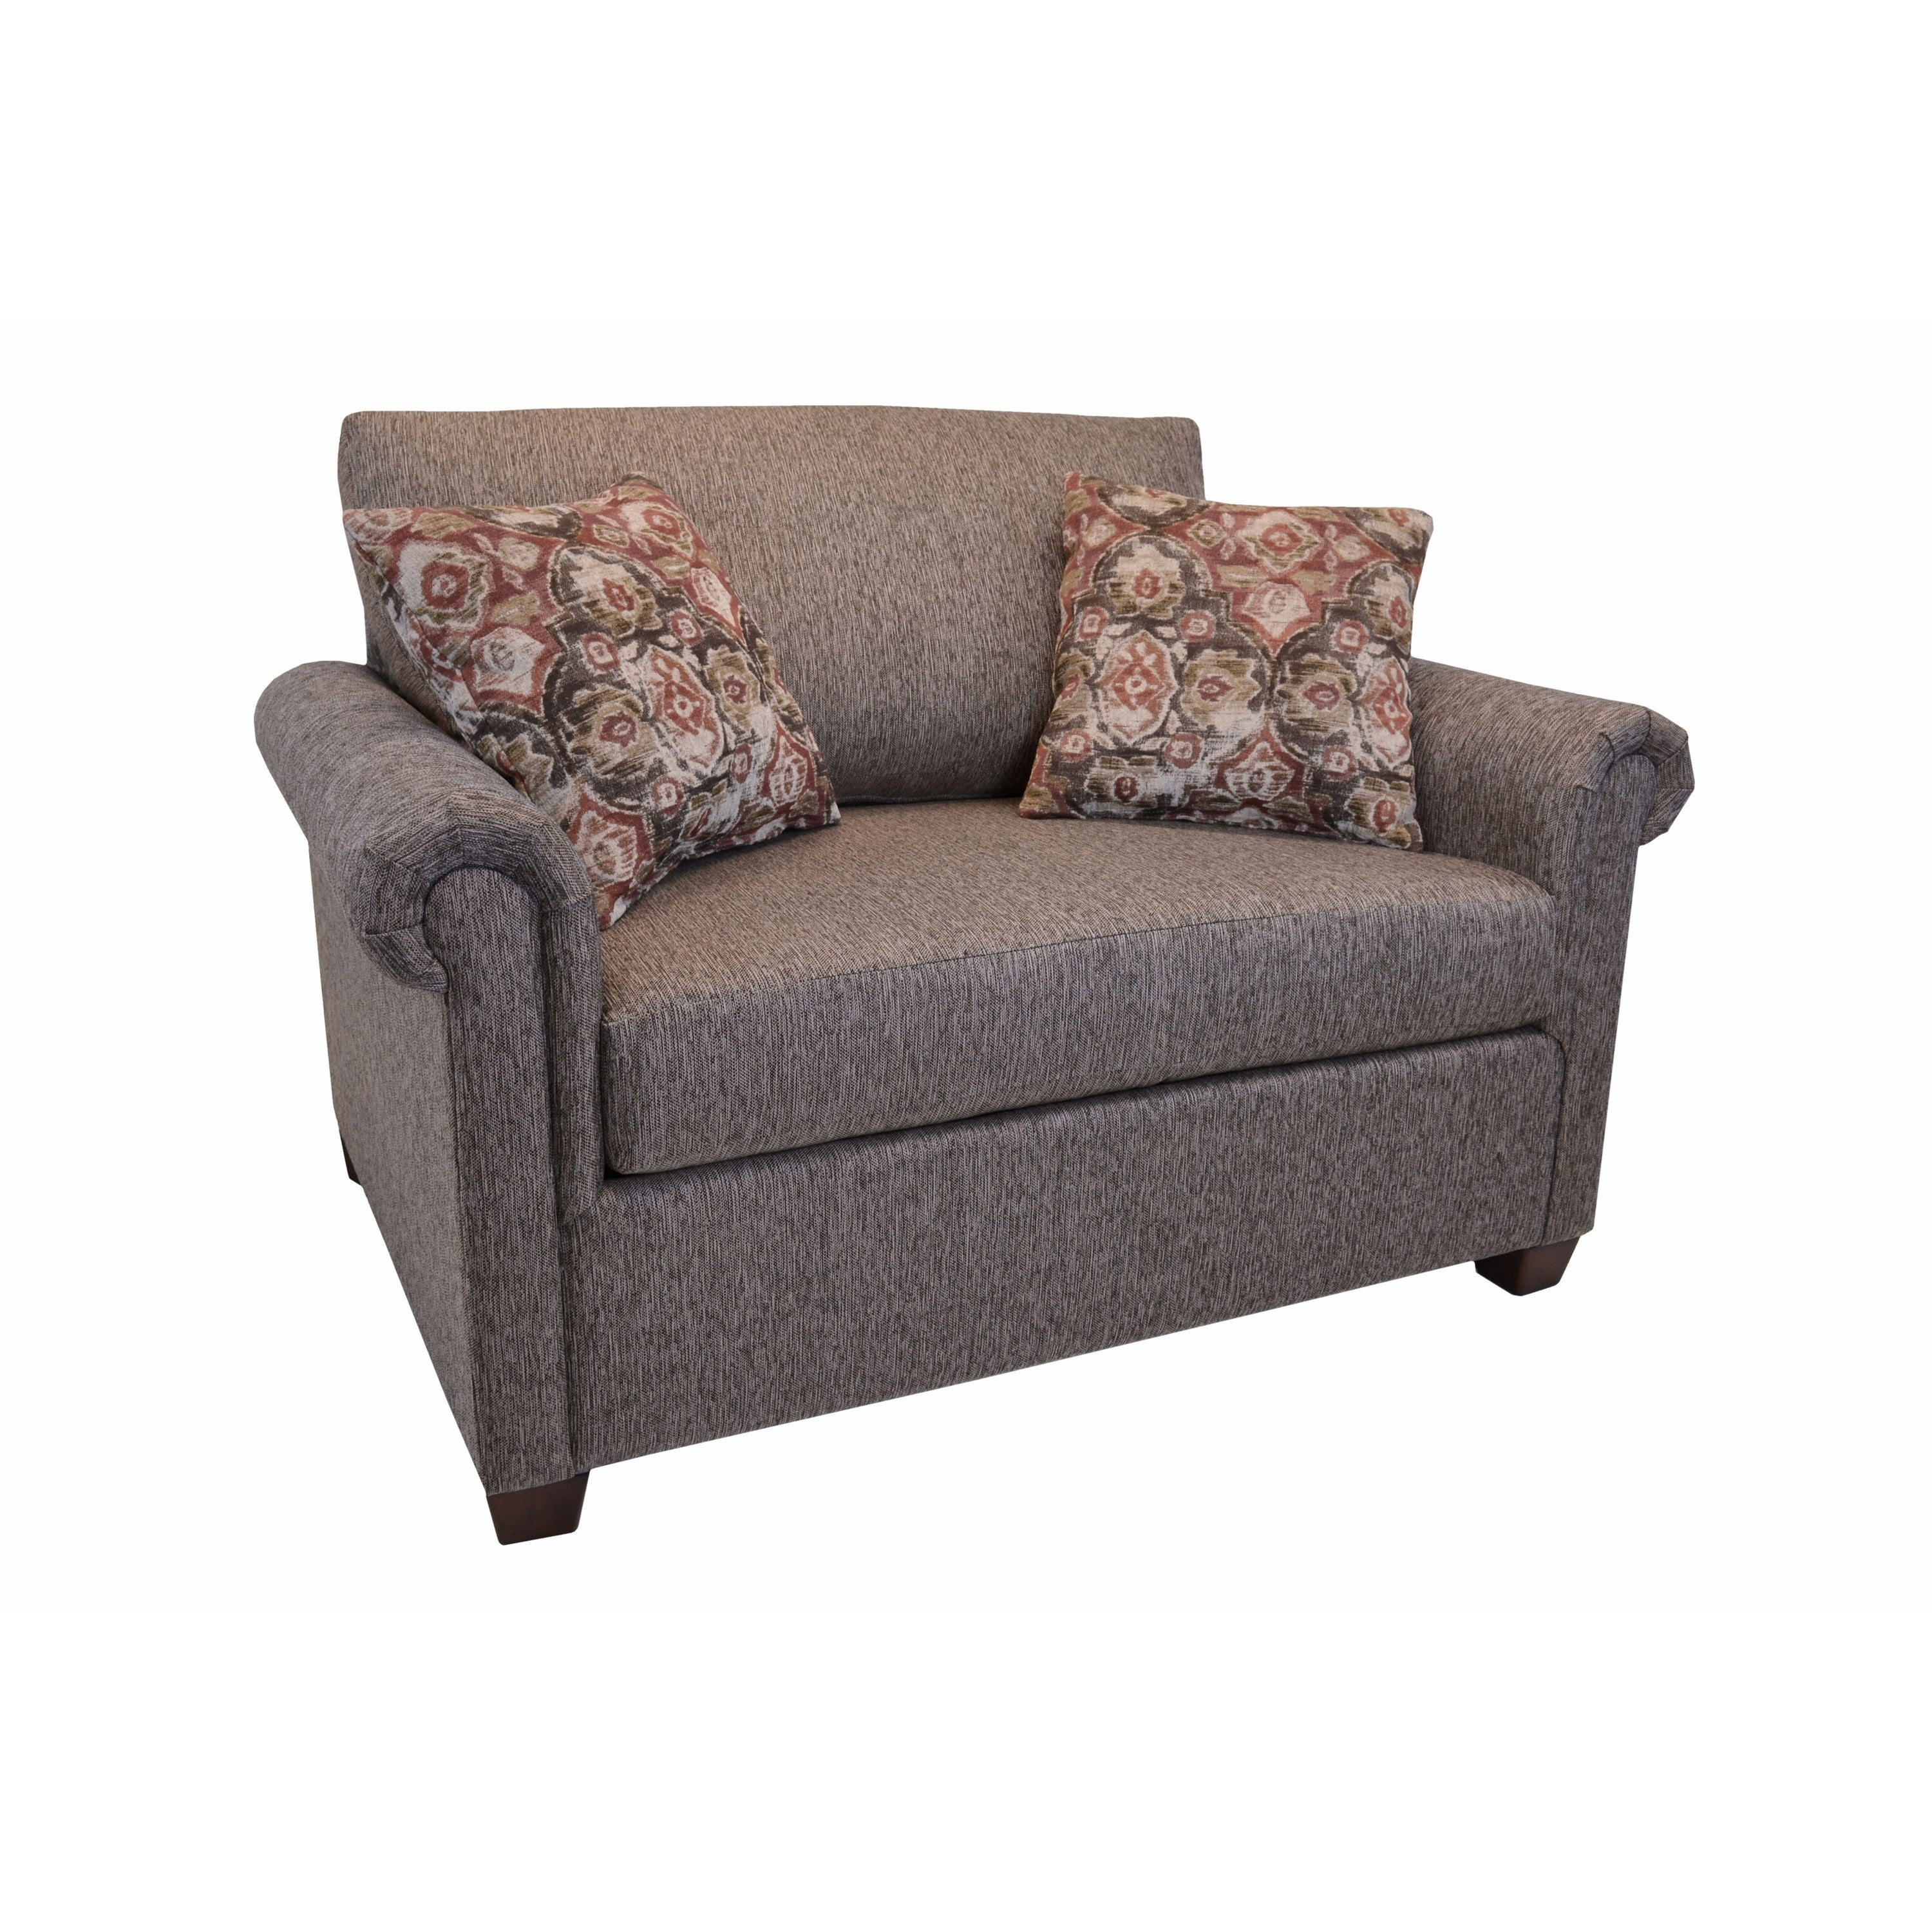 Buy sleepers online at overstock our best living room furniture deals